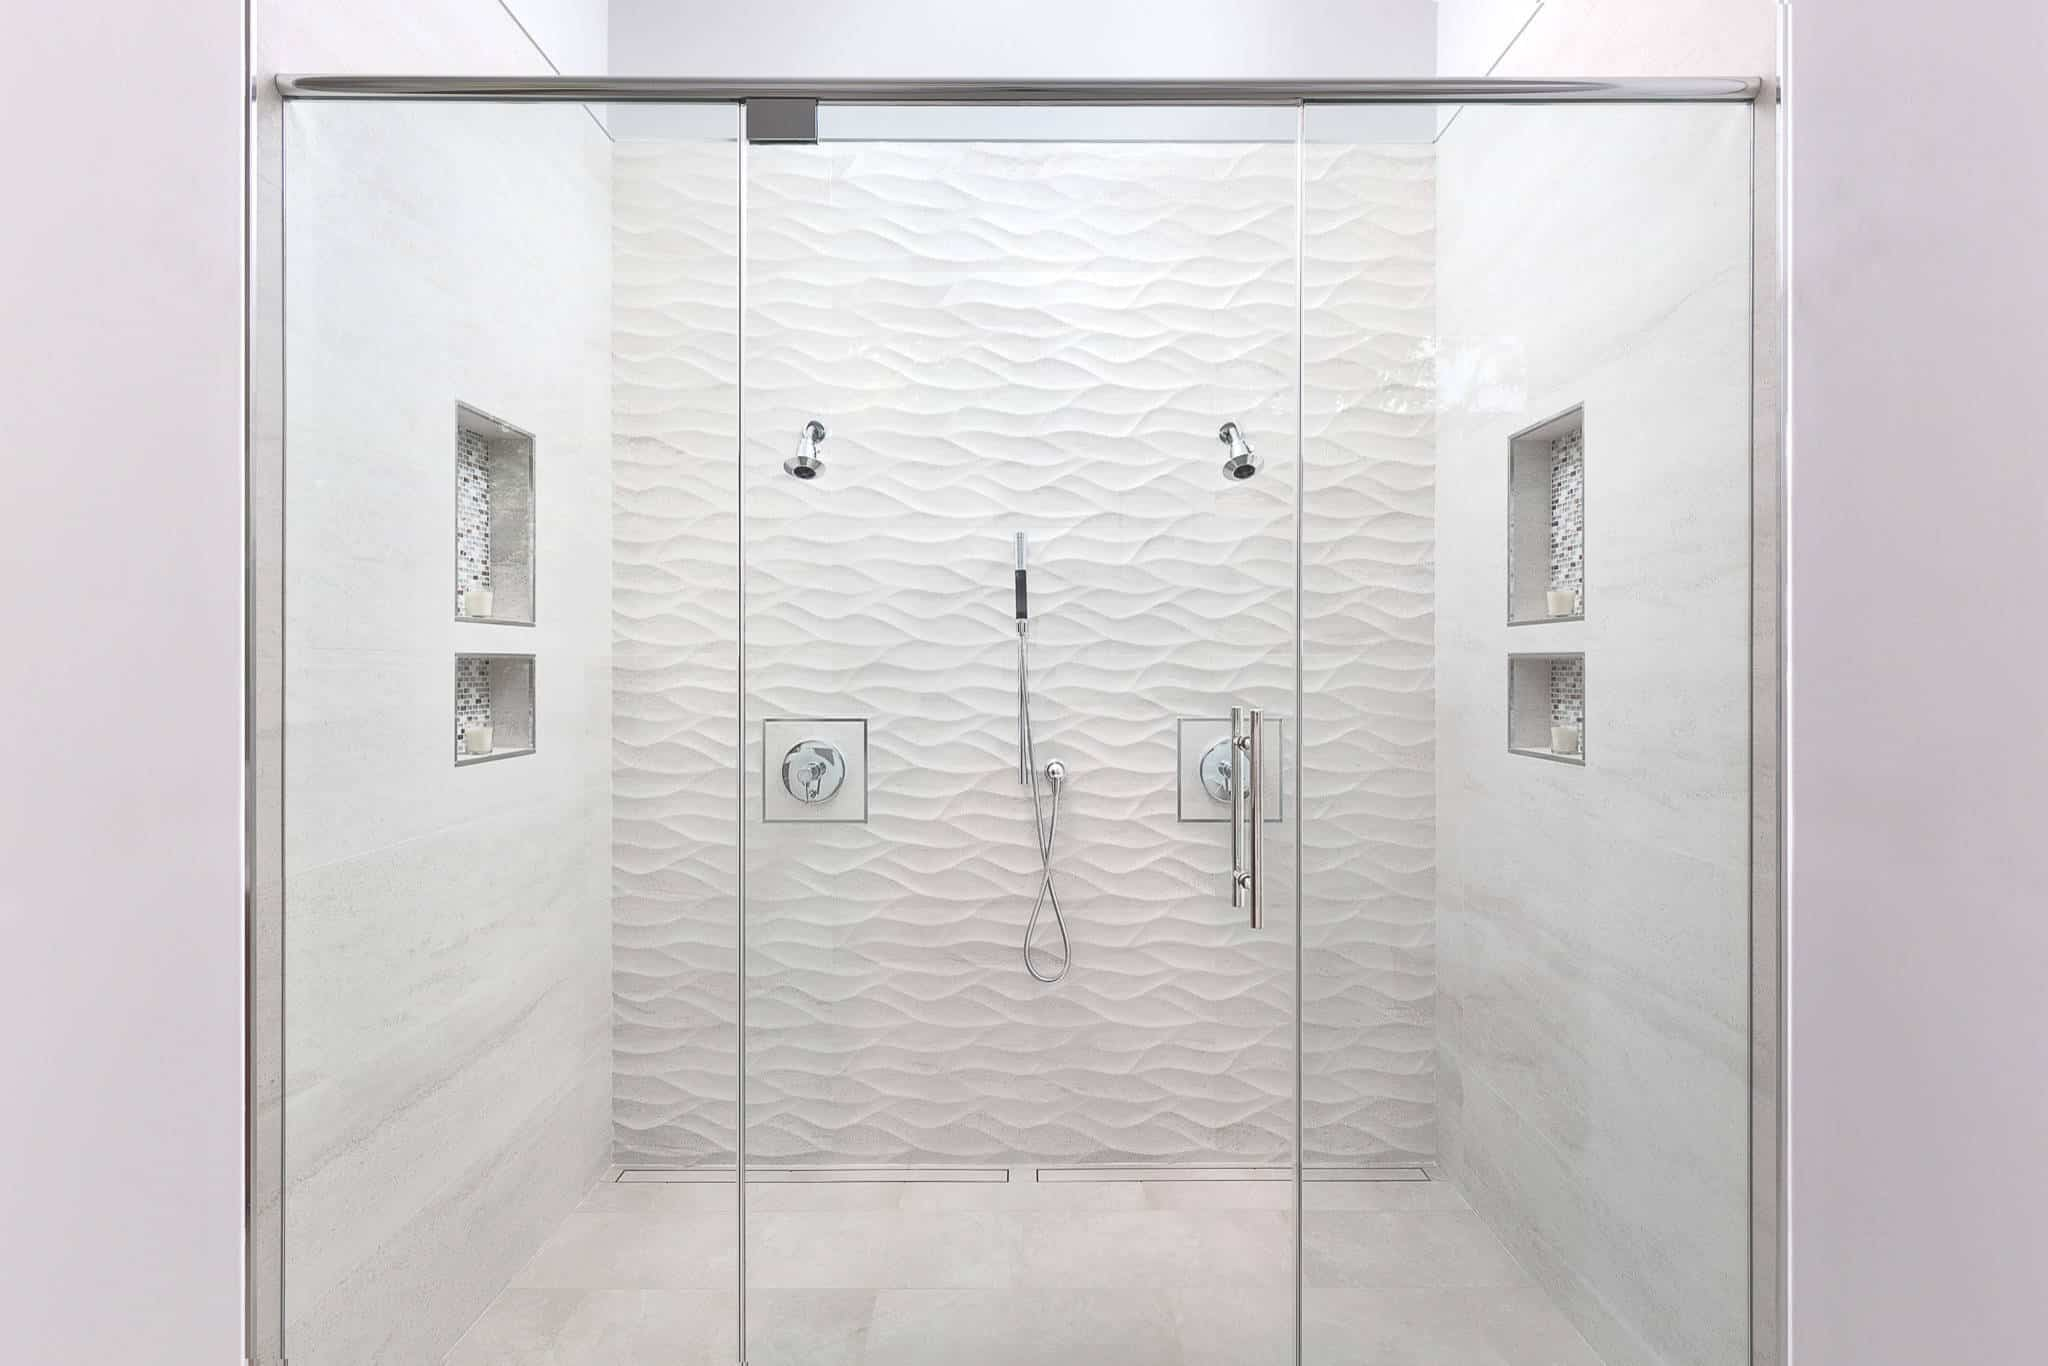 Groovy The Top Bathroom Tile Ideas And Photos A Quick Simple Guide Download Free Architecture Designs Scobabritishbridgeorg